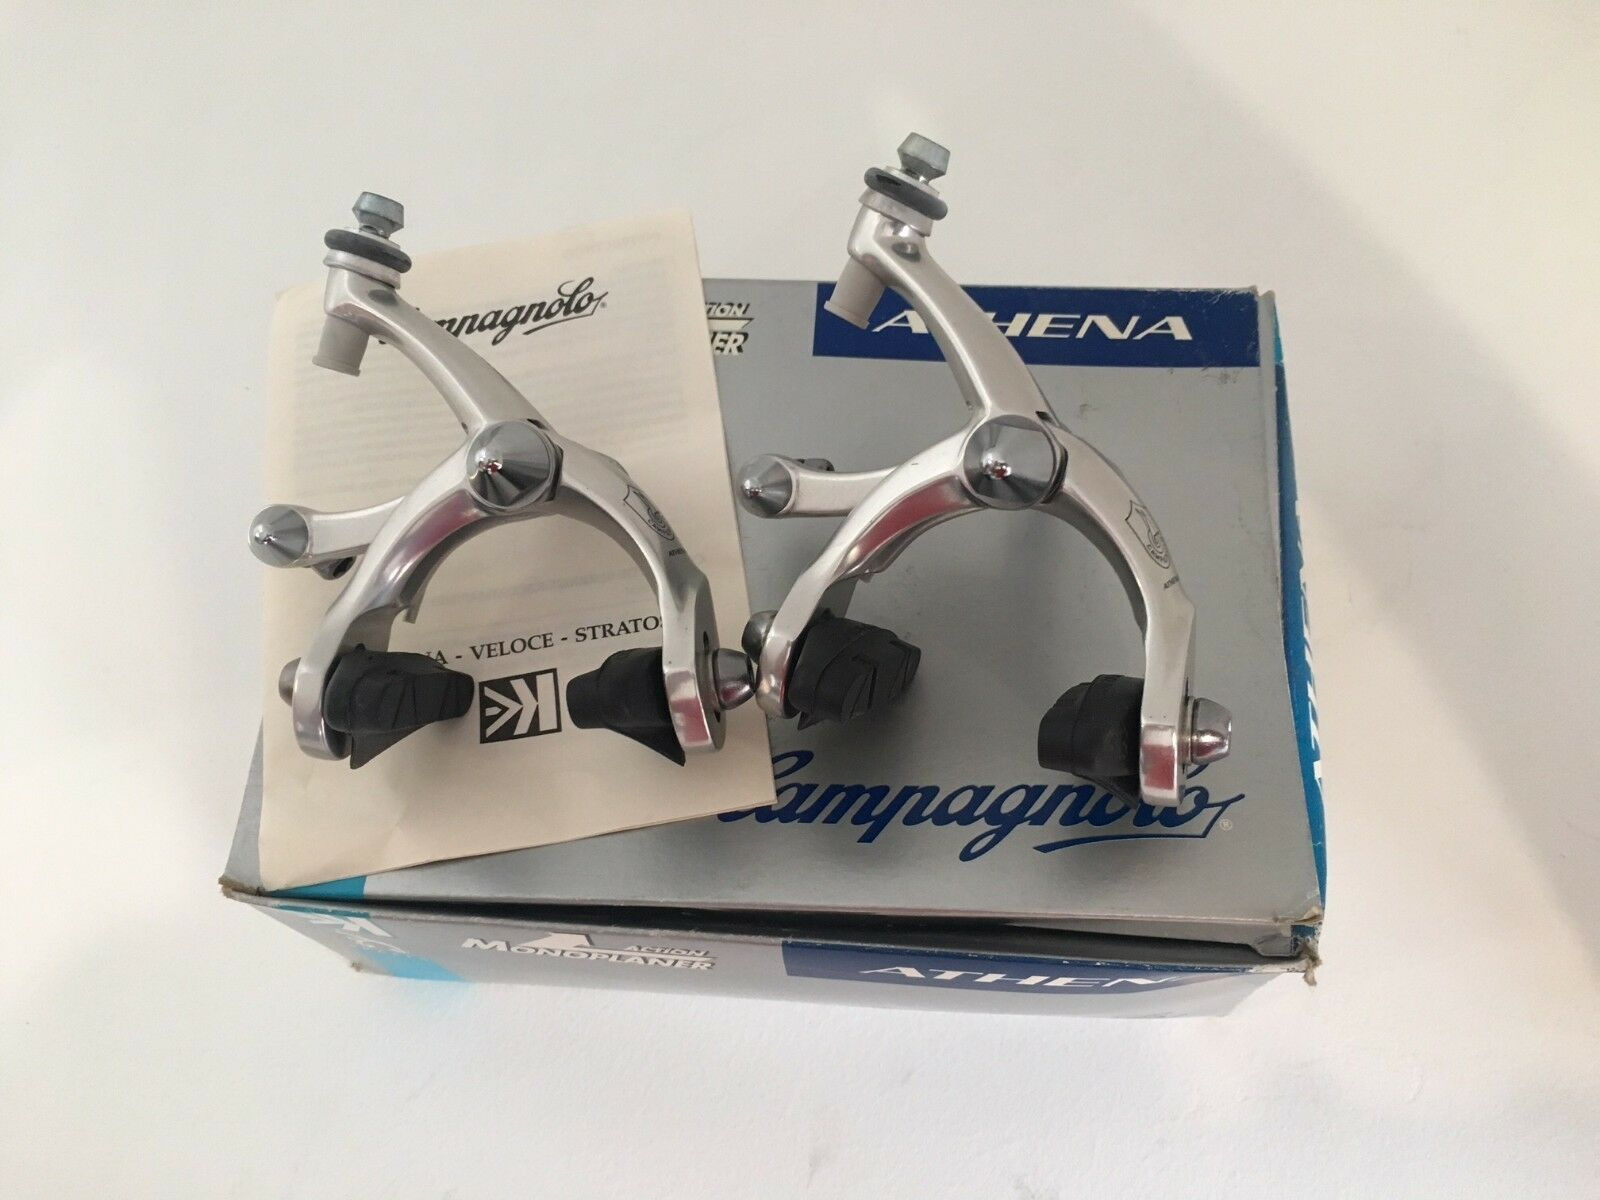 FRENI BRAKES MODELLO ATHENA ORIGINALE CAMPAGNOLO BR22AT